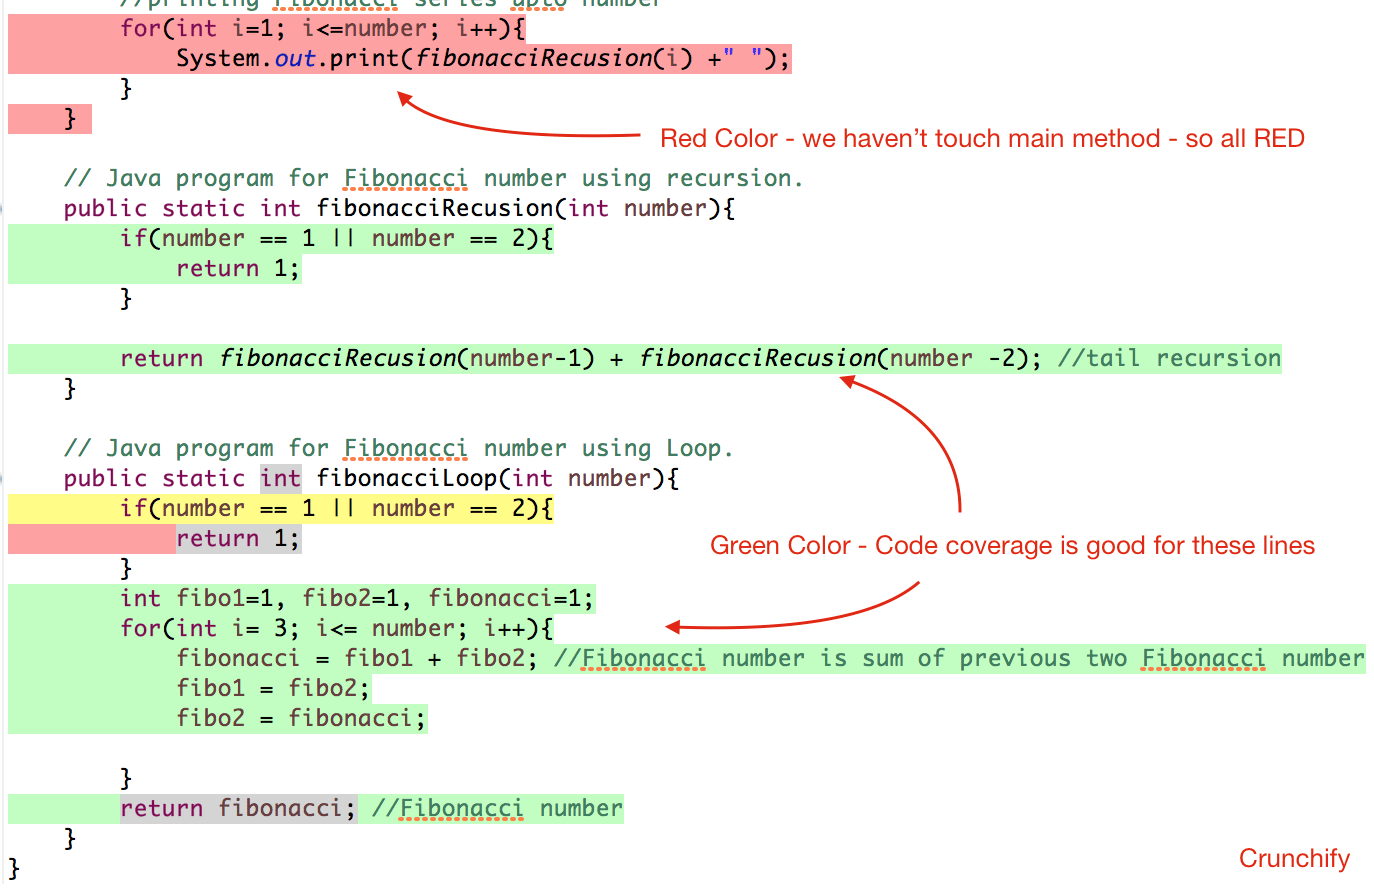 Crunchify Fibonacci Series Code Coverage Color mapping